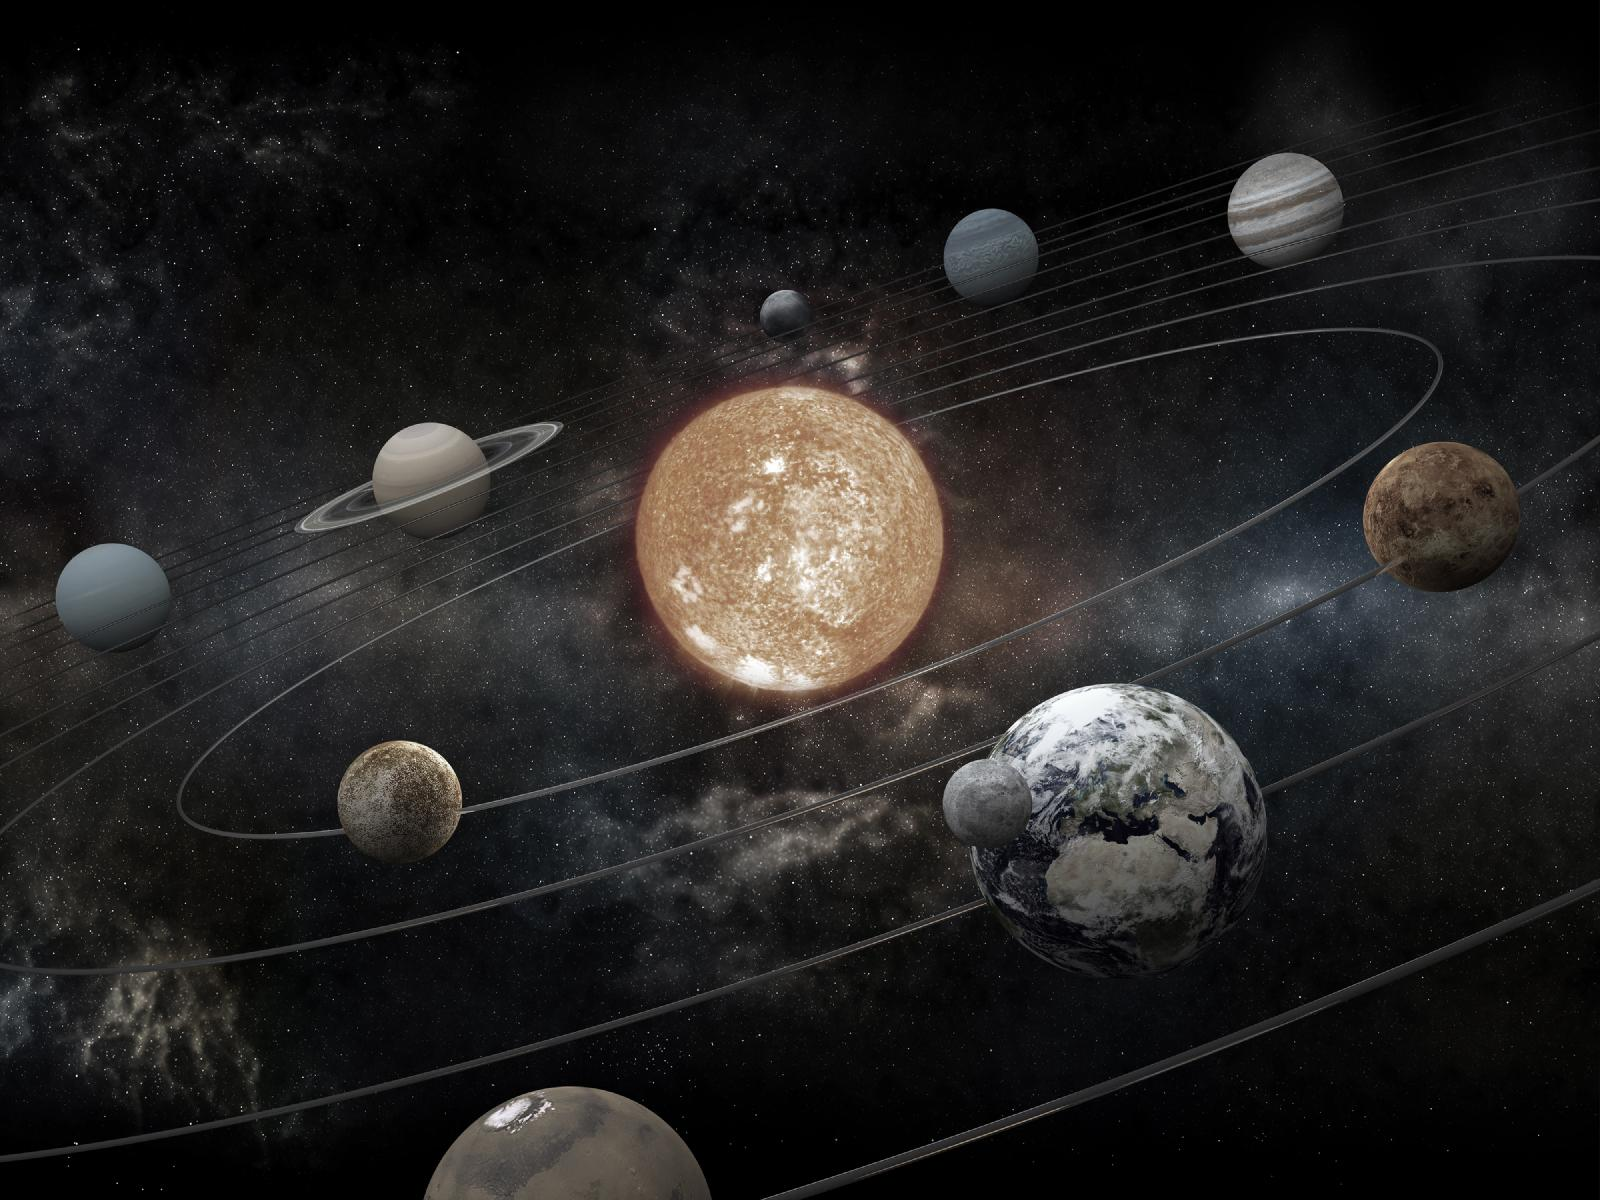 Chaos versus Order in Planetary Systems